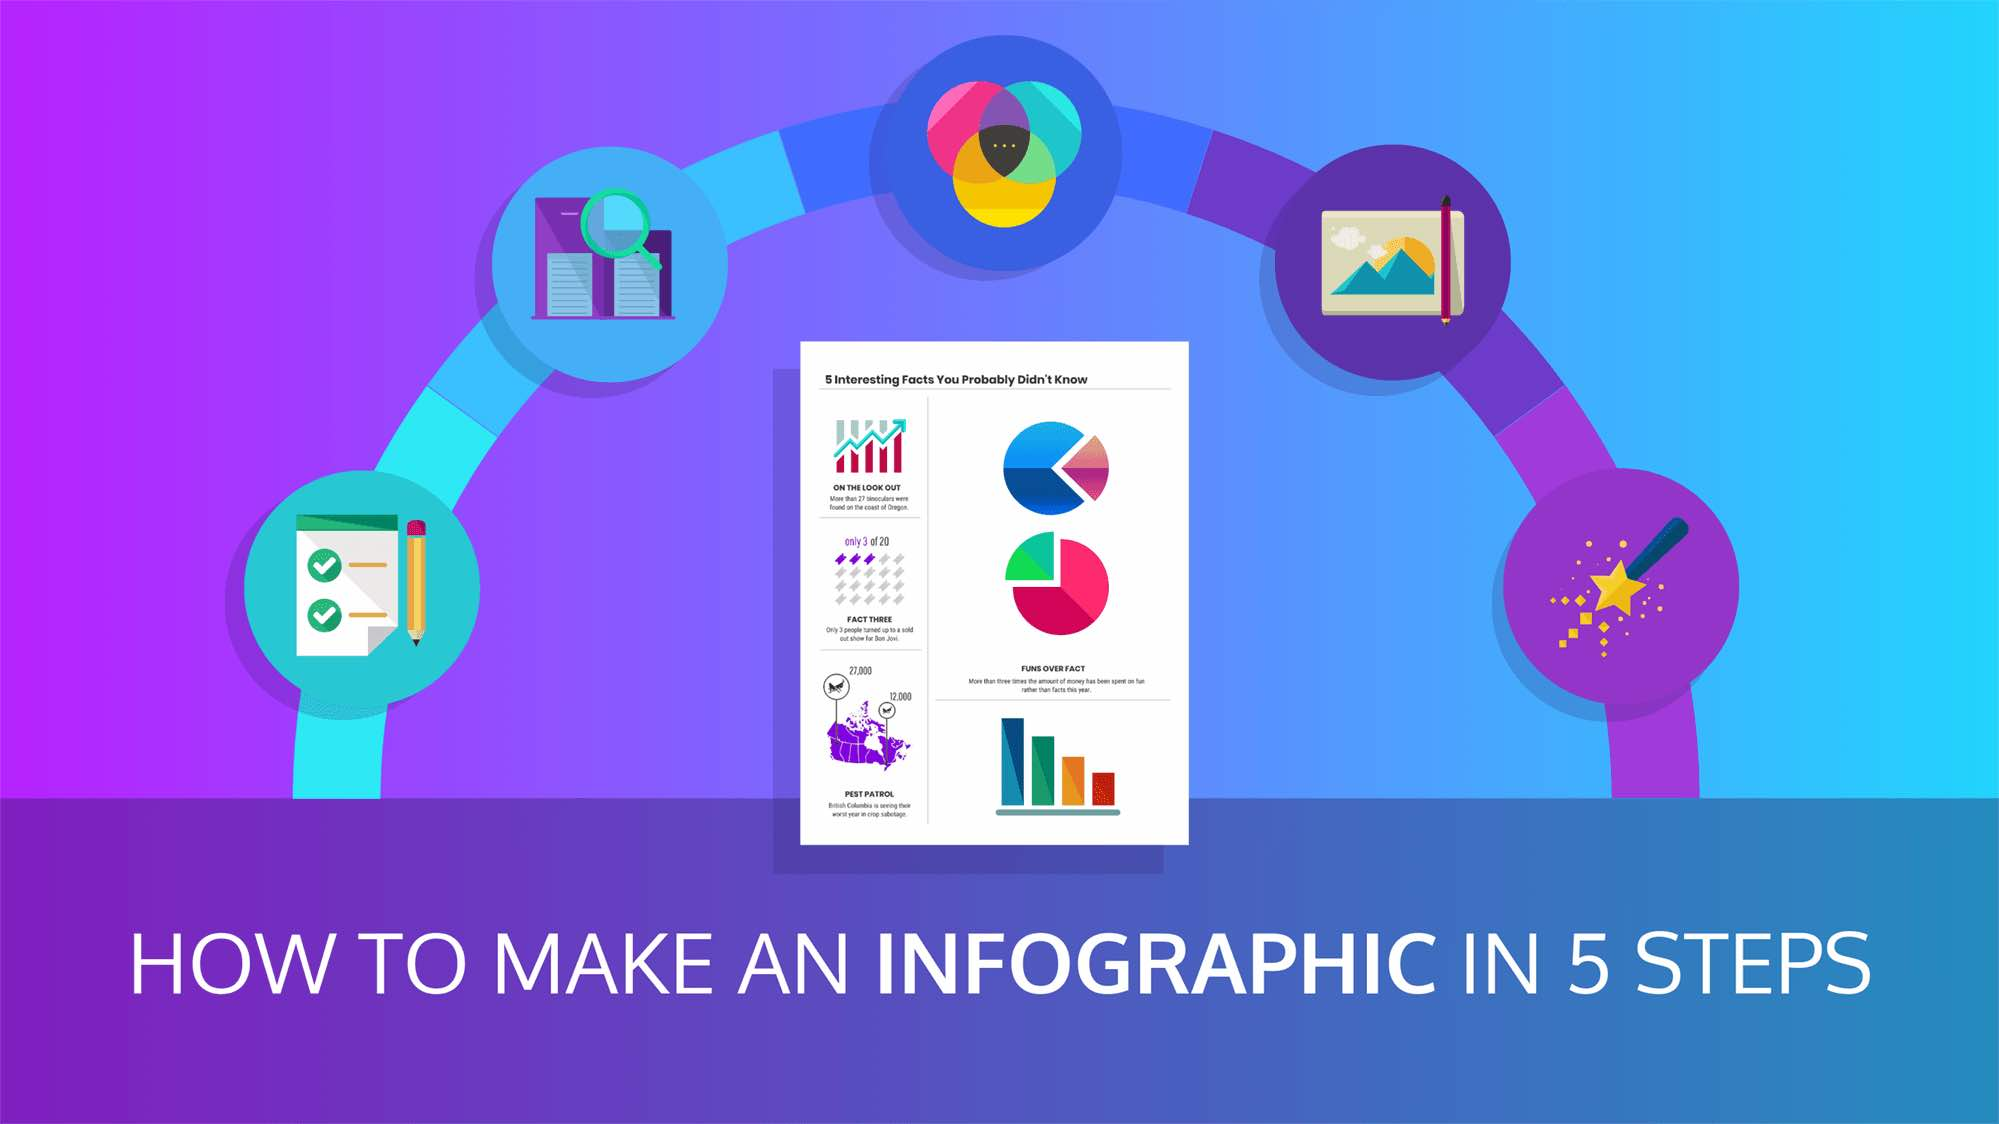 how-to-make-an-infographic-in-5-steps-blog-header